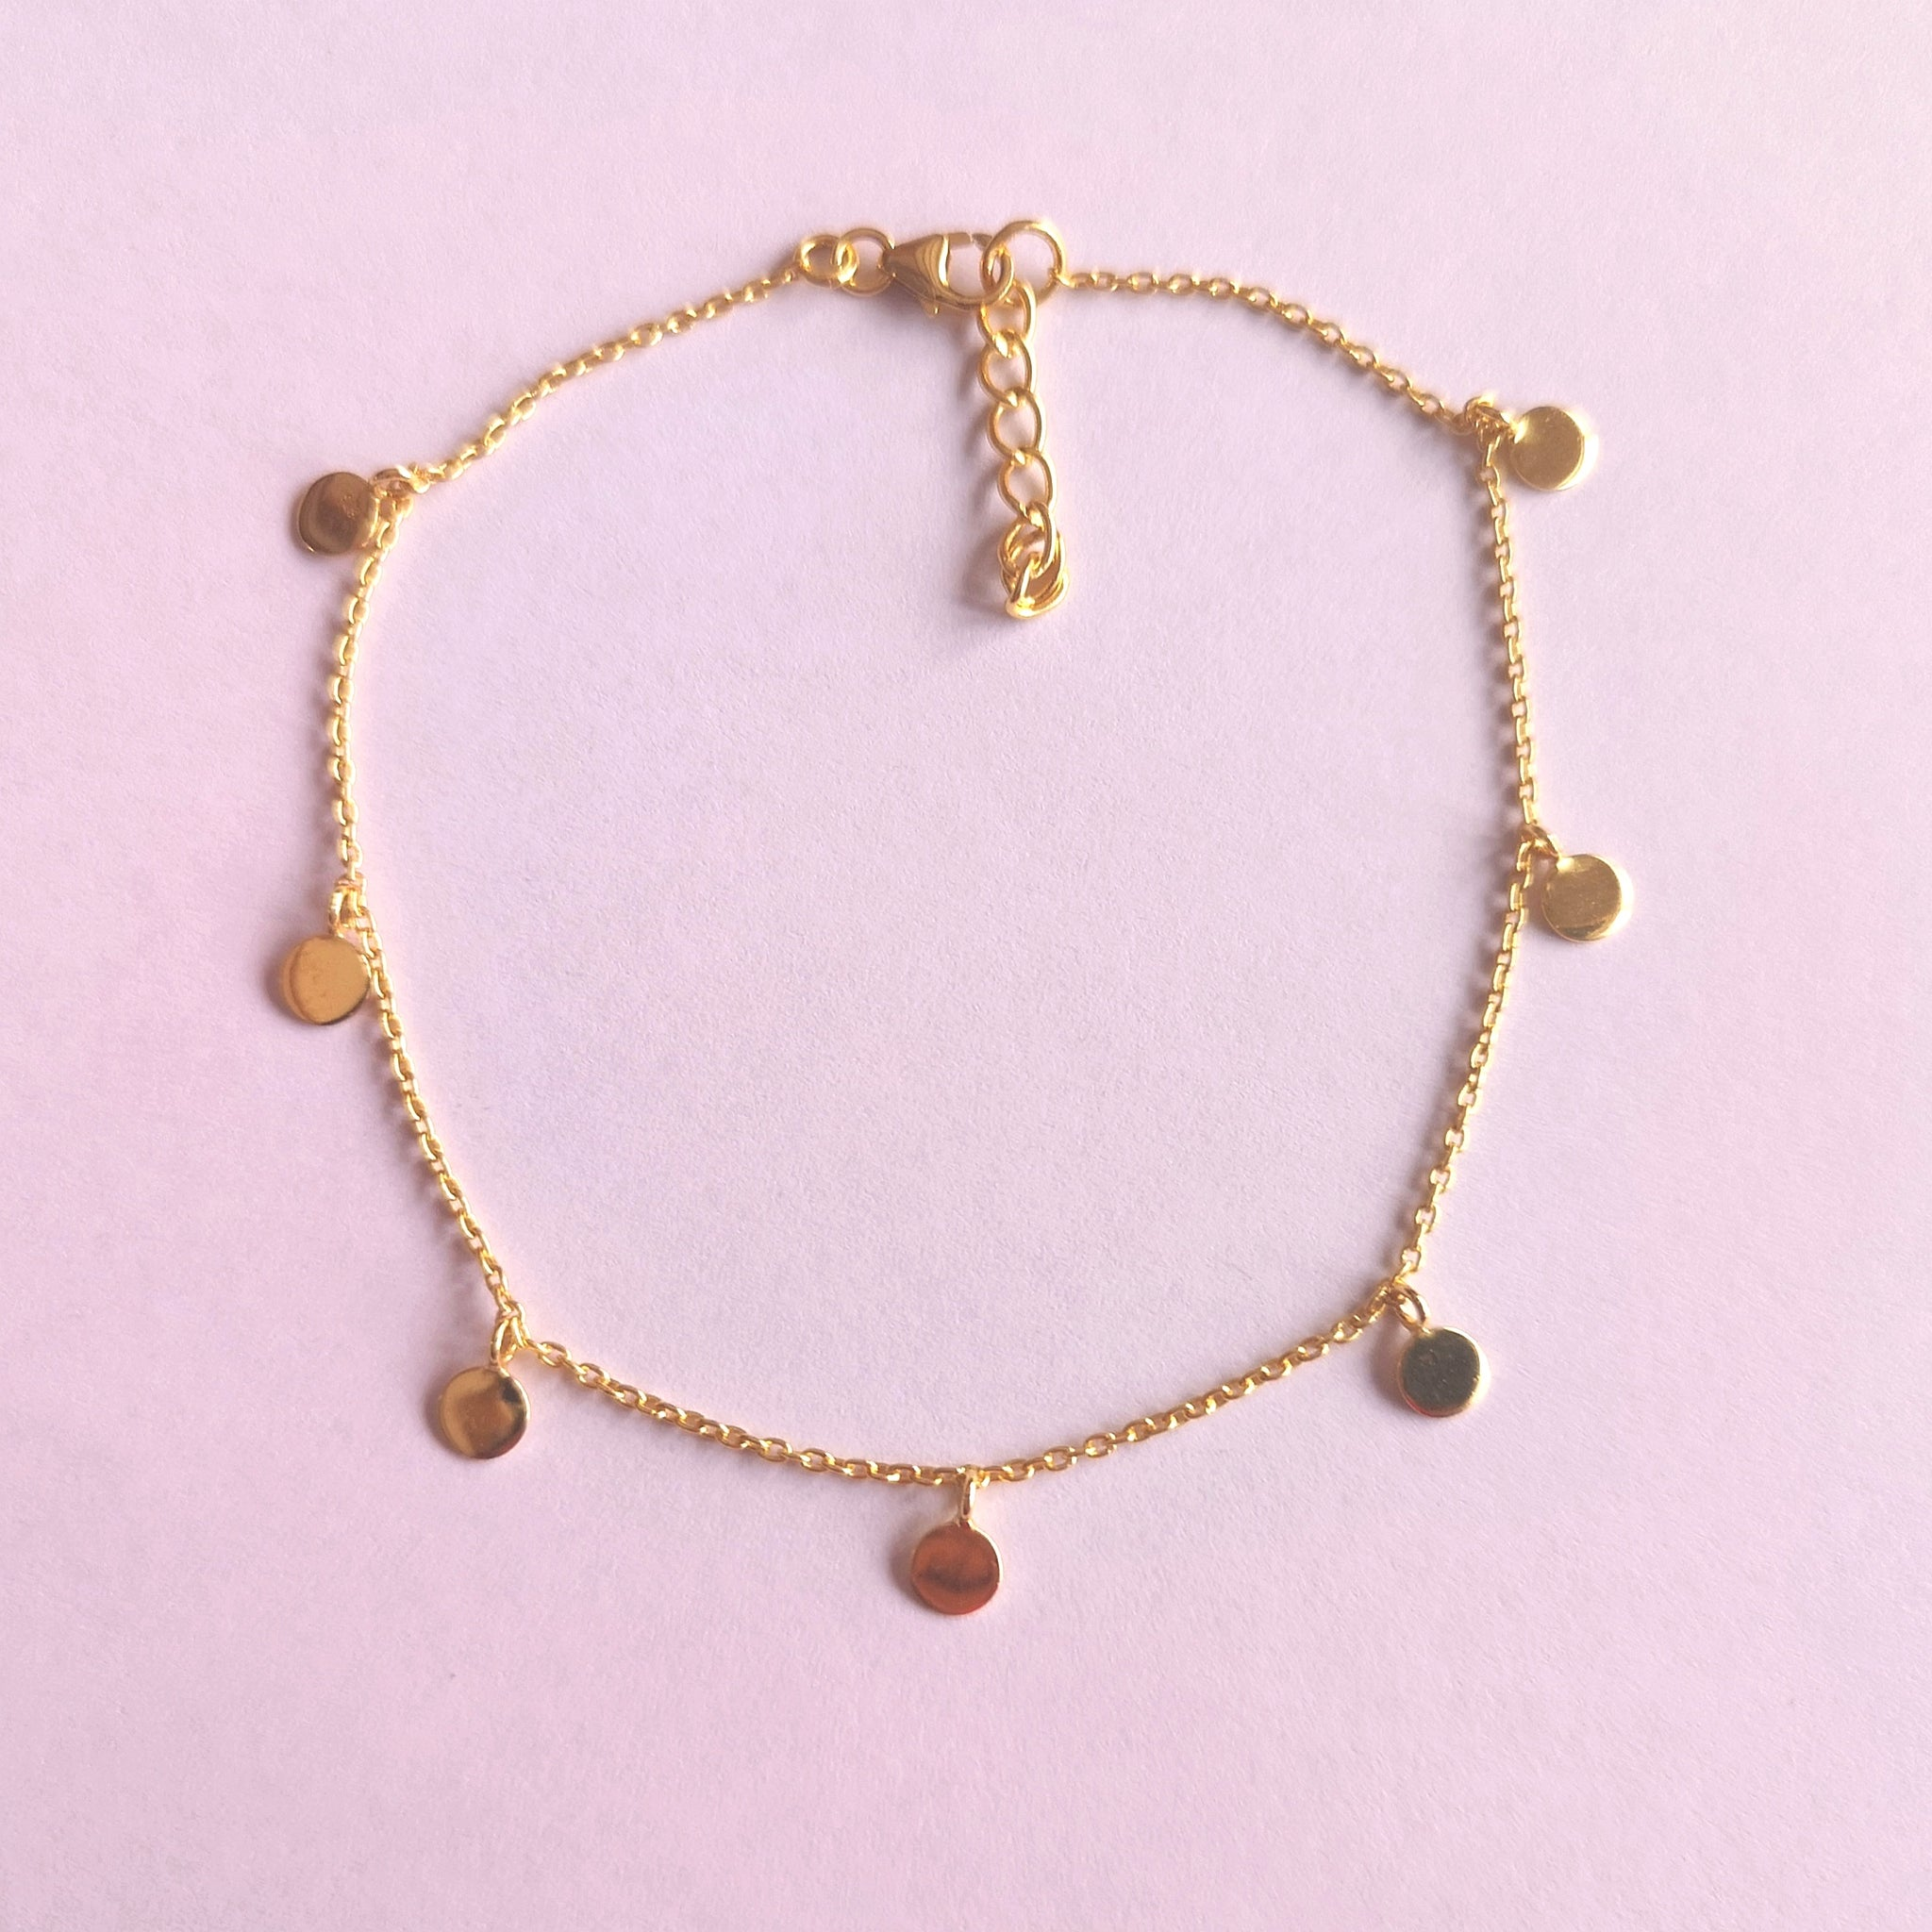 925 Silver Gold Disc Or Circle Anklet